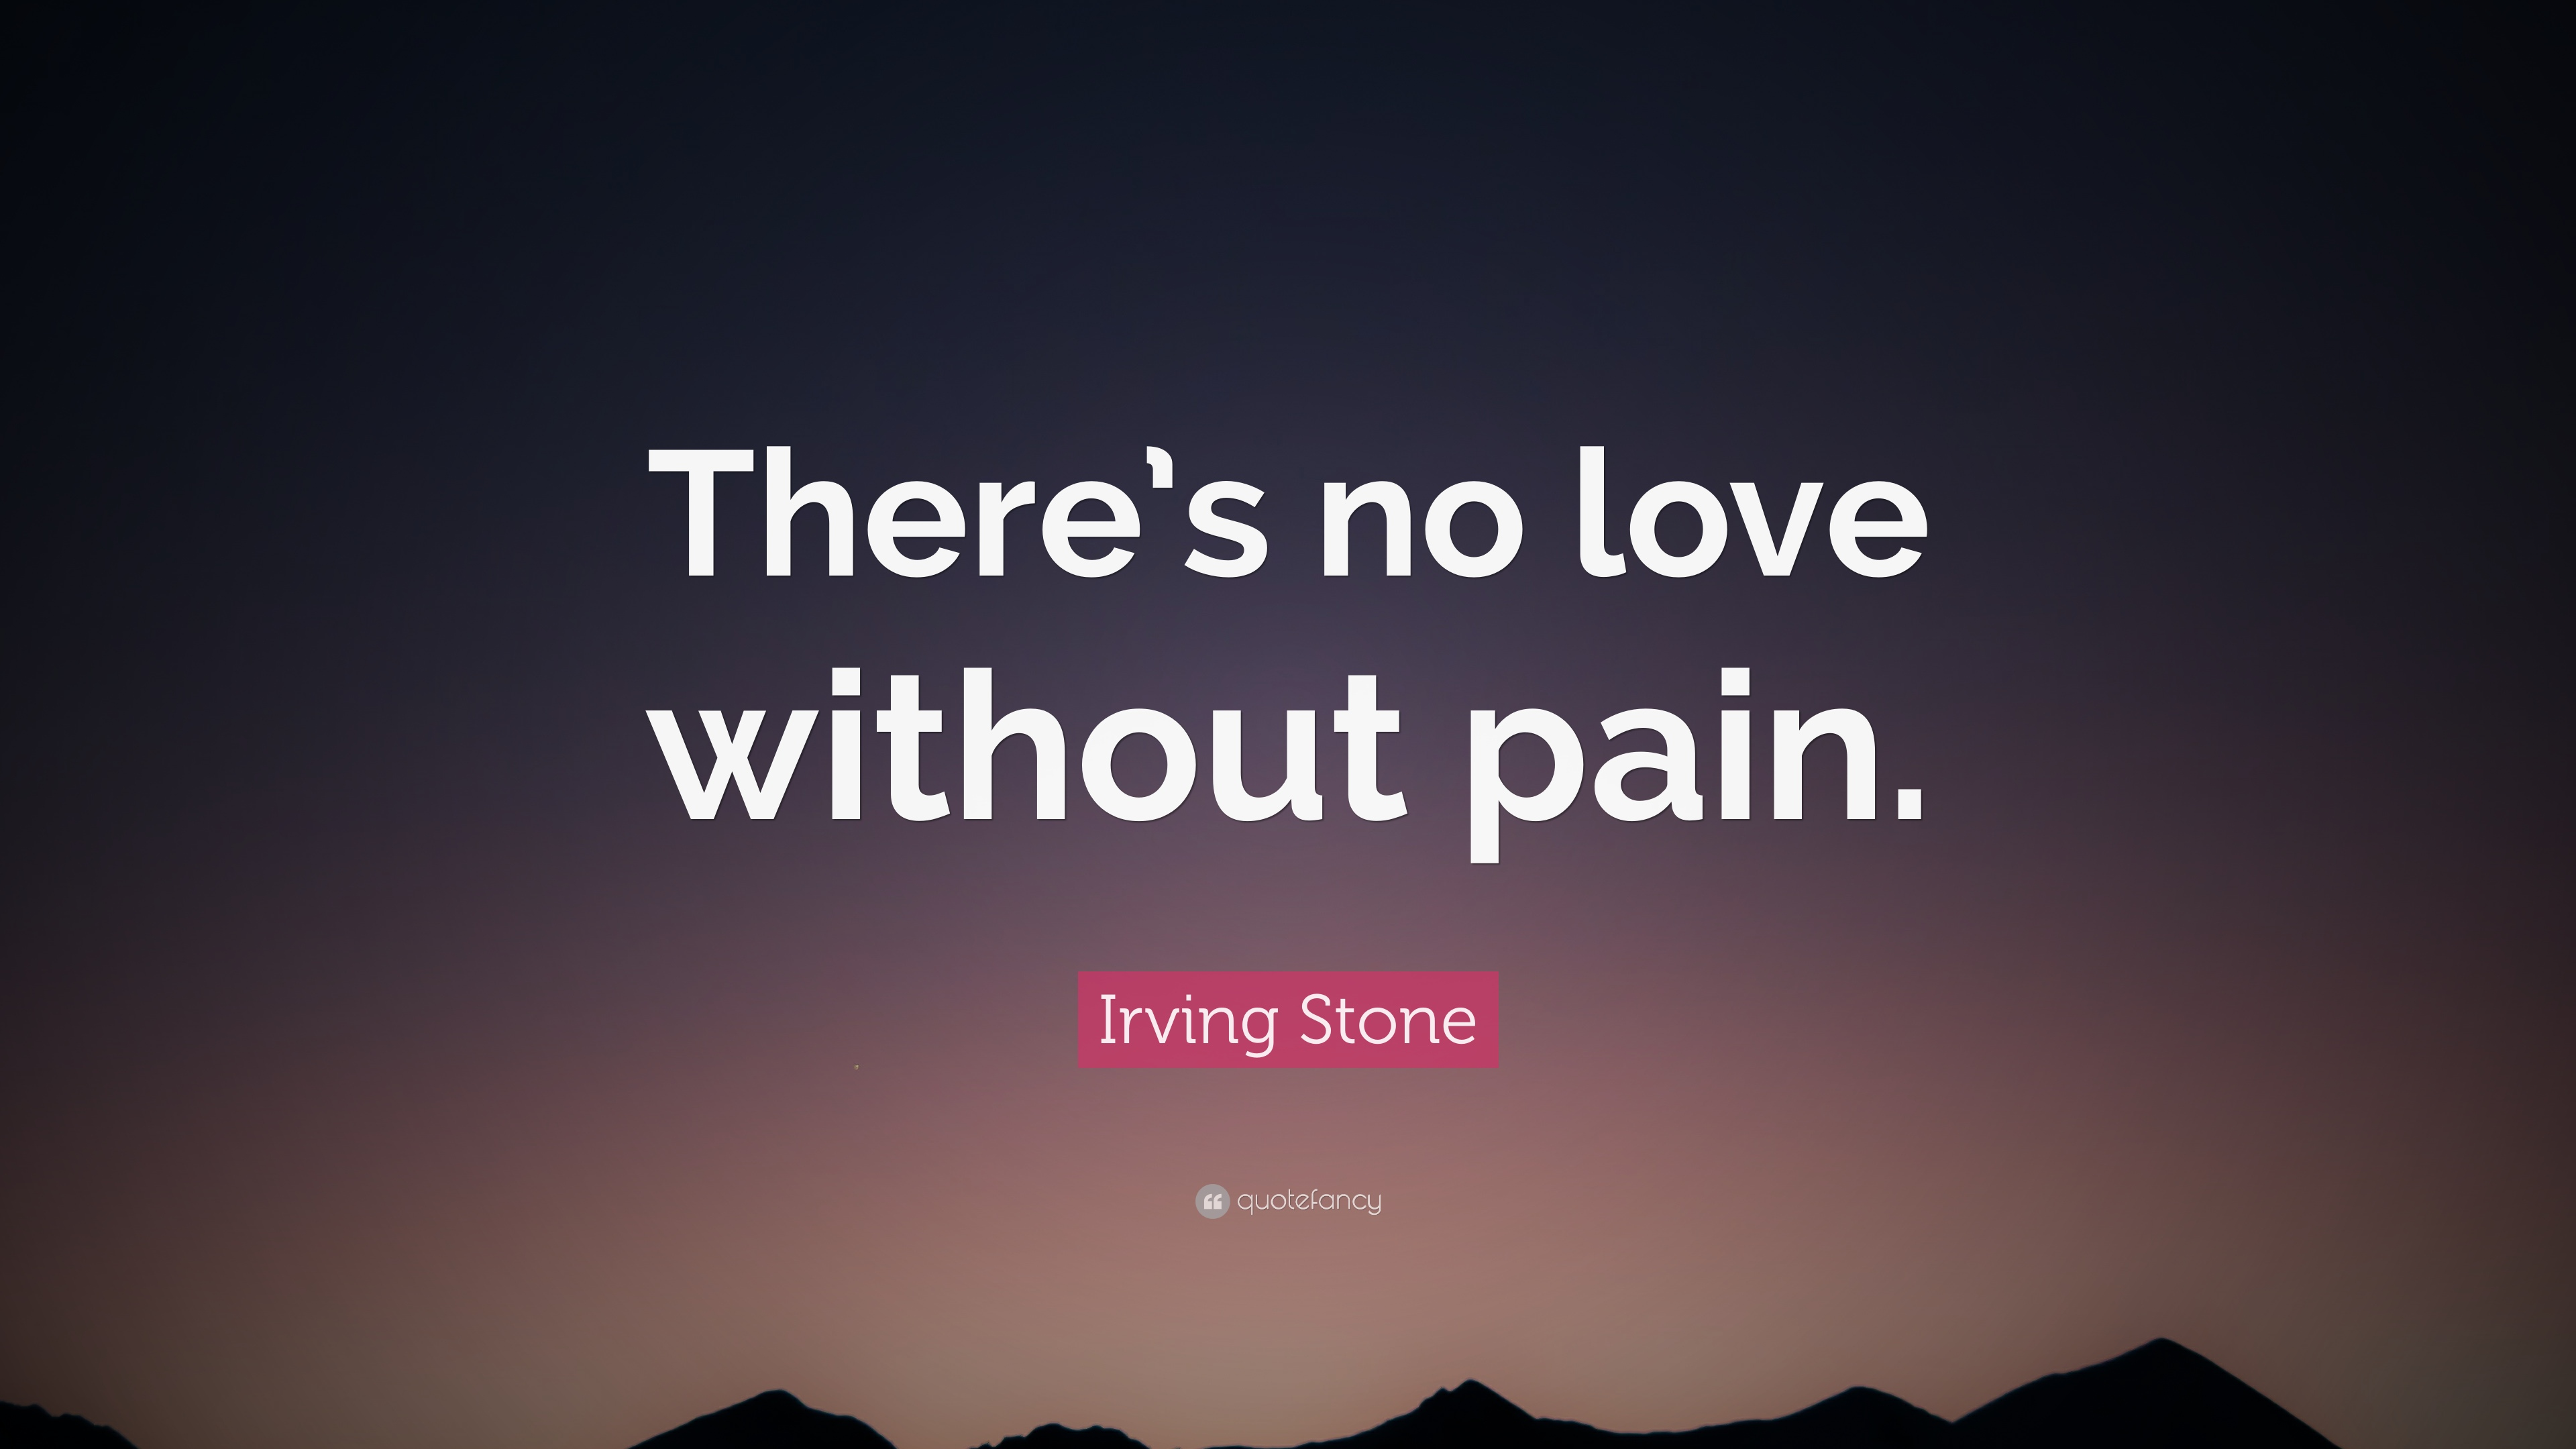 Irving Stone Quote There s no love without pain